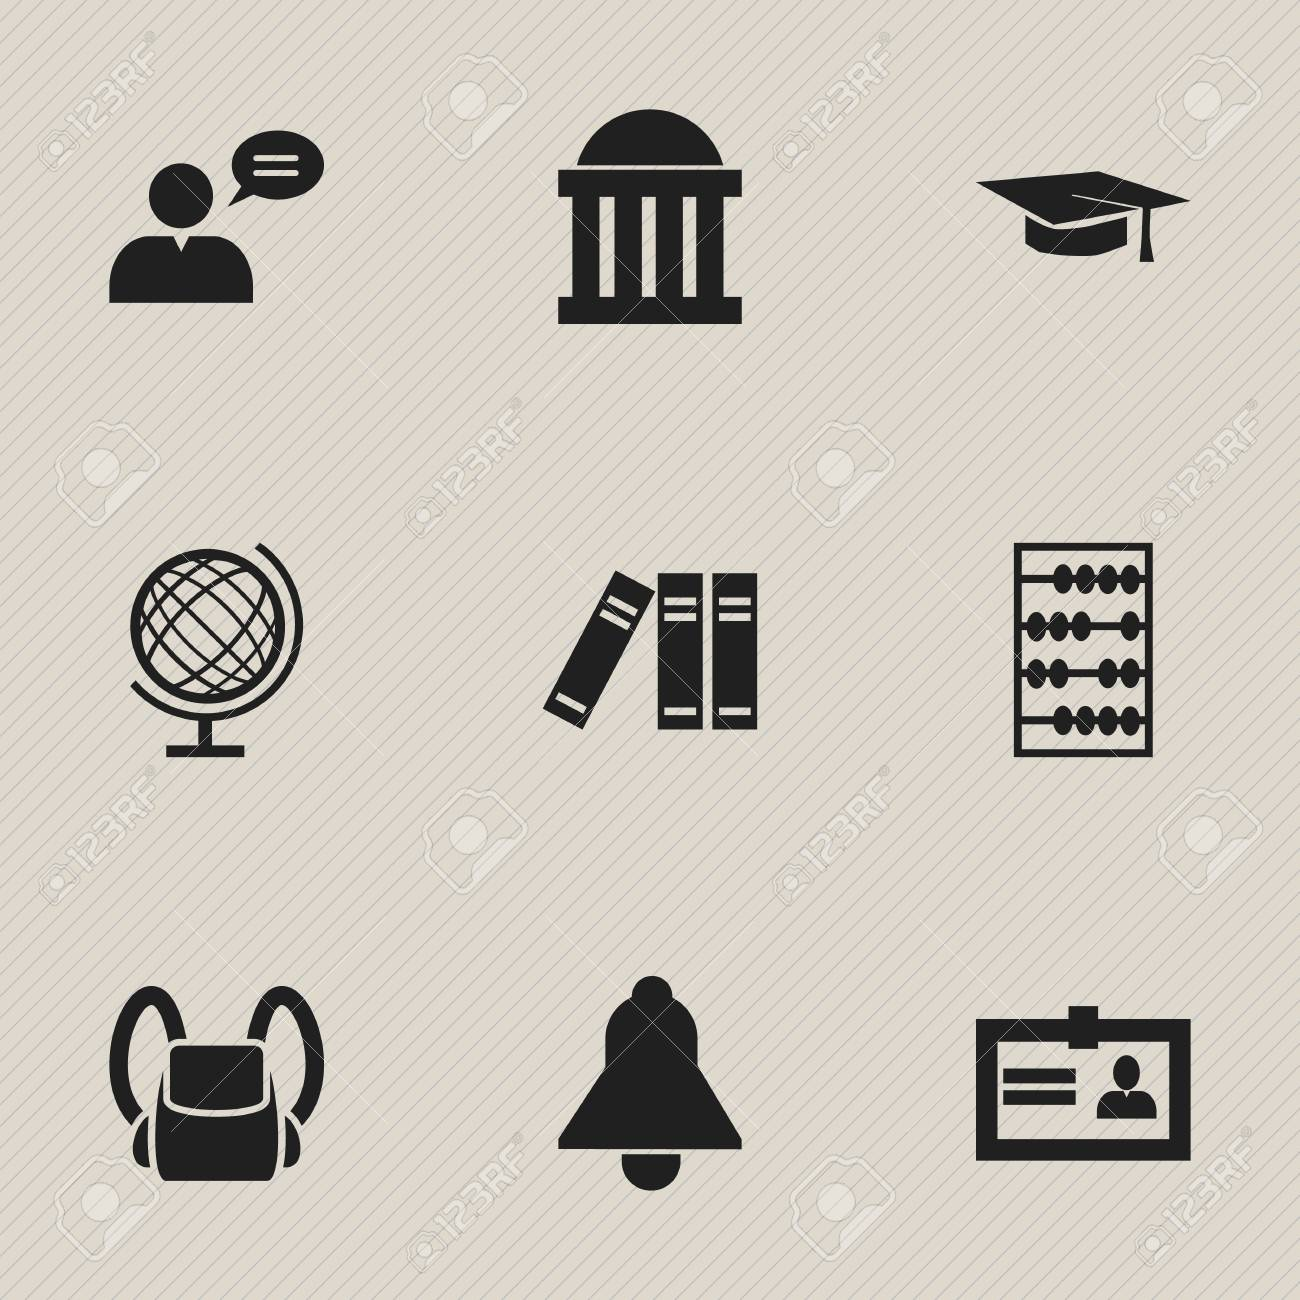 Set Of 9 Editable University Icons Includes Symbols Such As